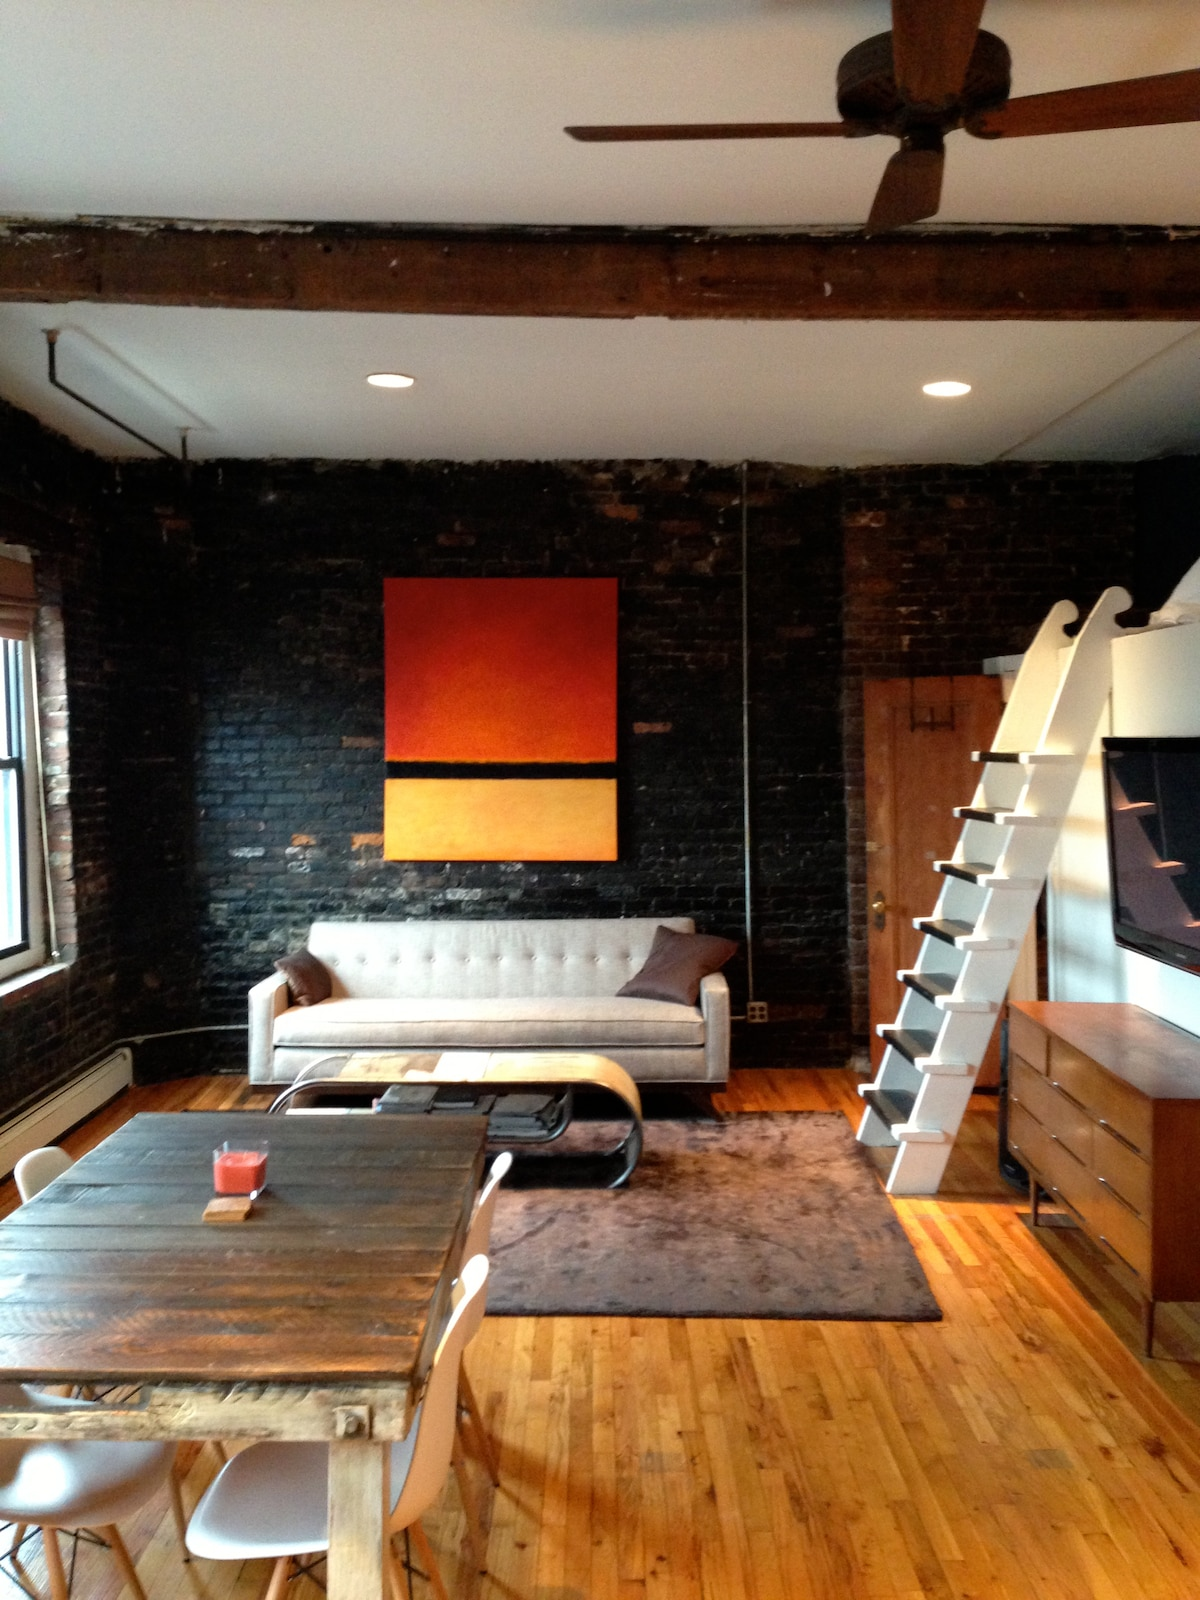 Amazing, quiet LES loft near subway